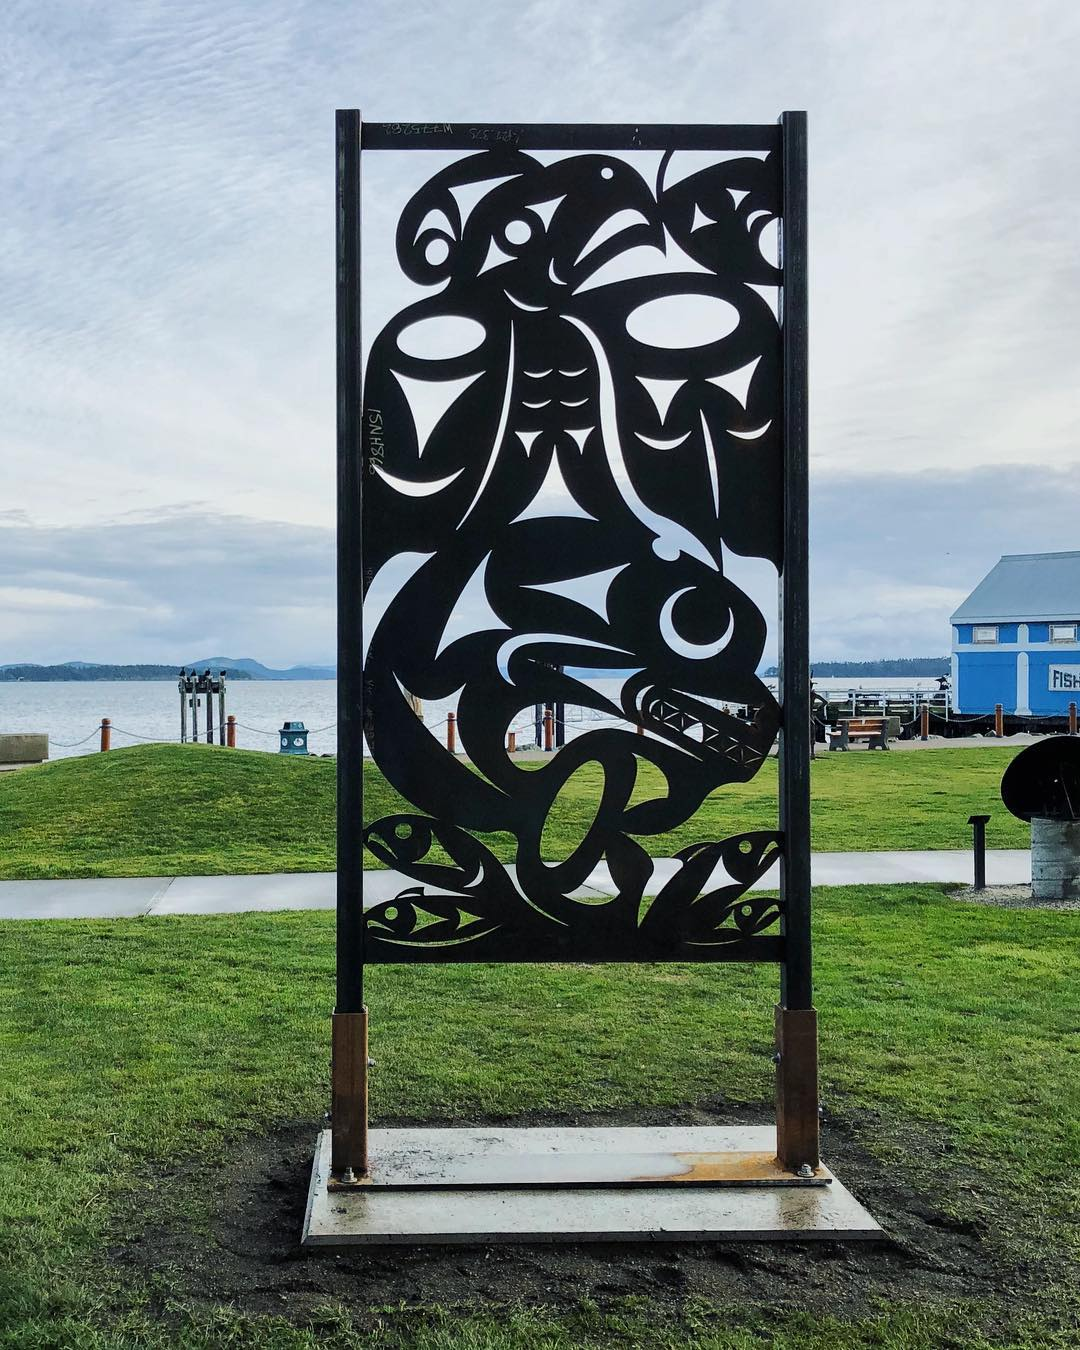 sidney bc public art sculpture